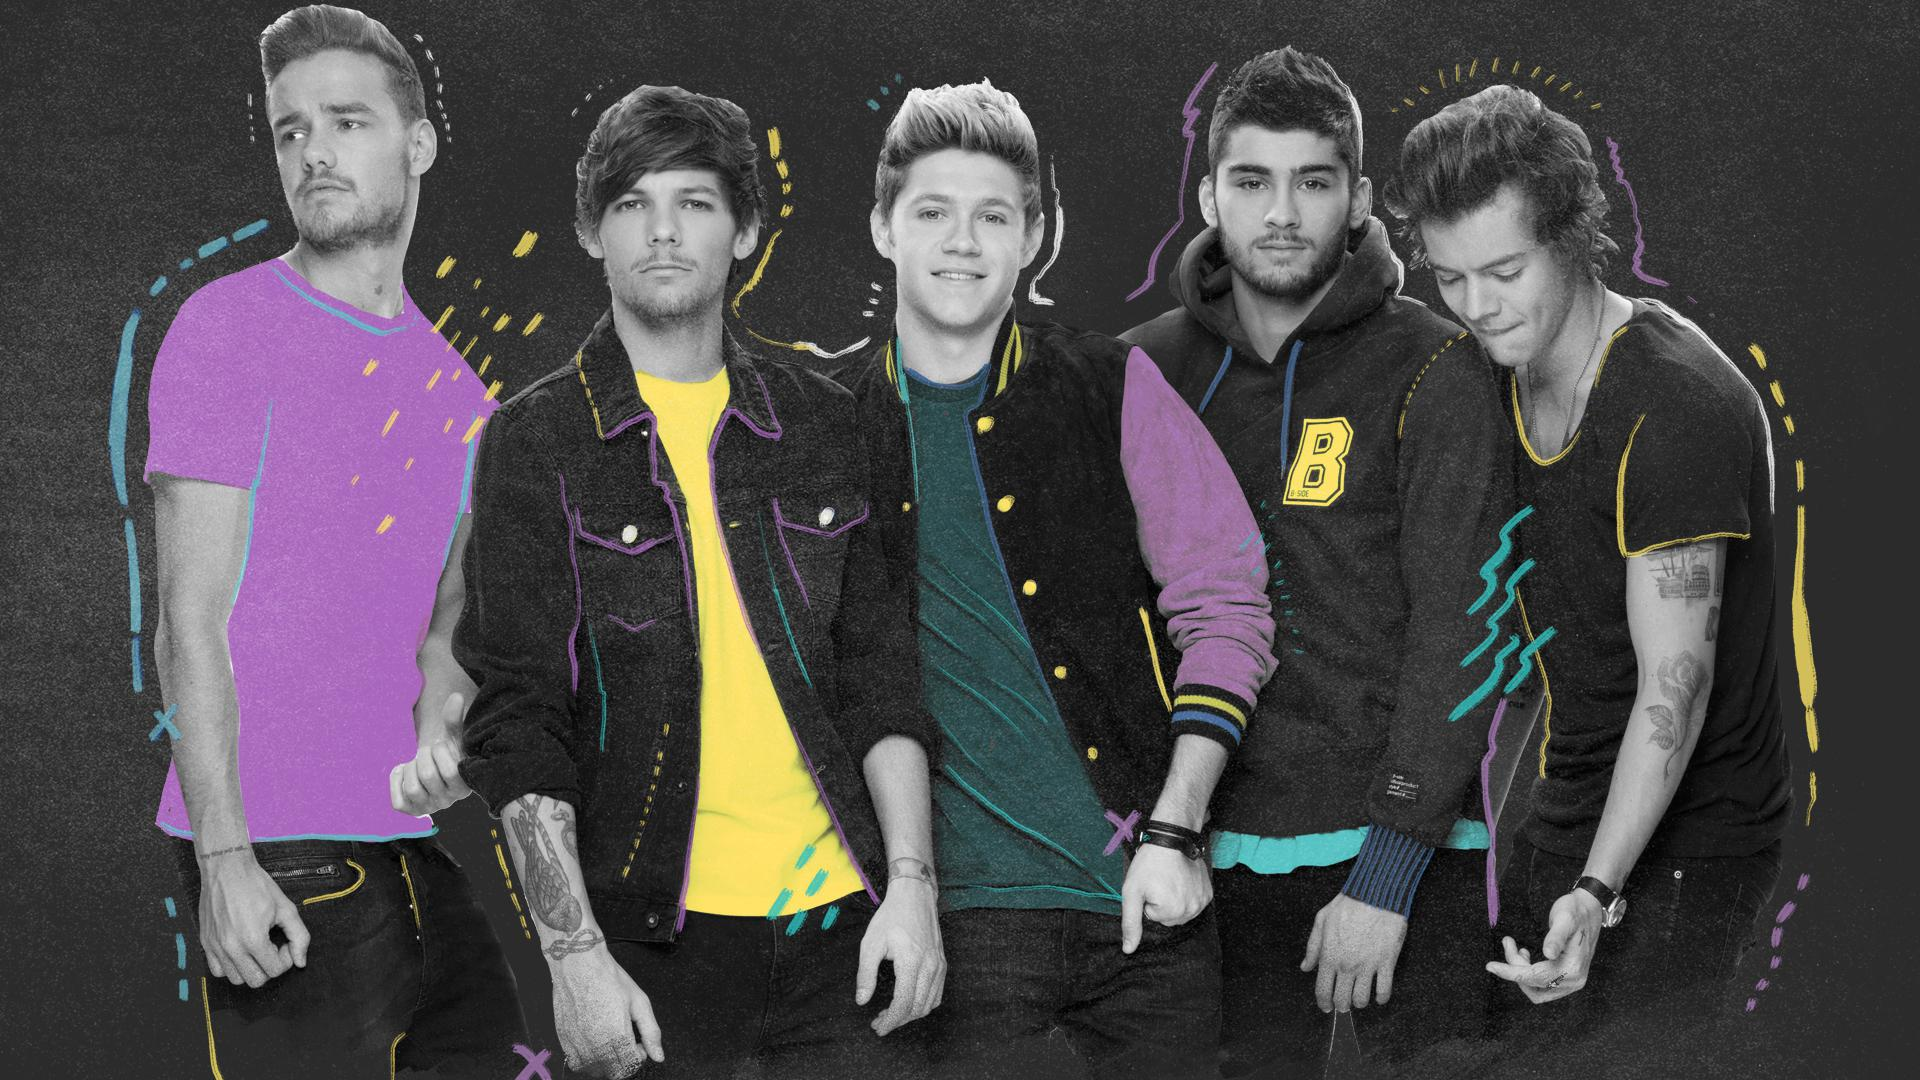 48+] One Direction Wallpapers for Desktop 2015